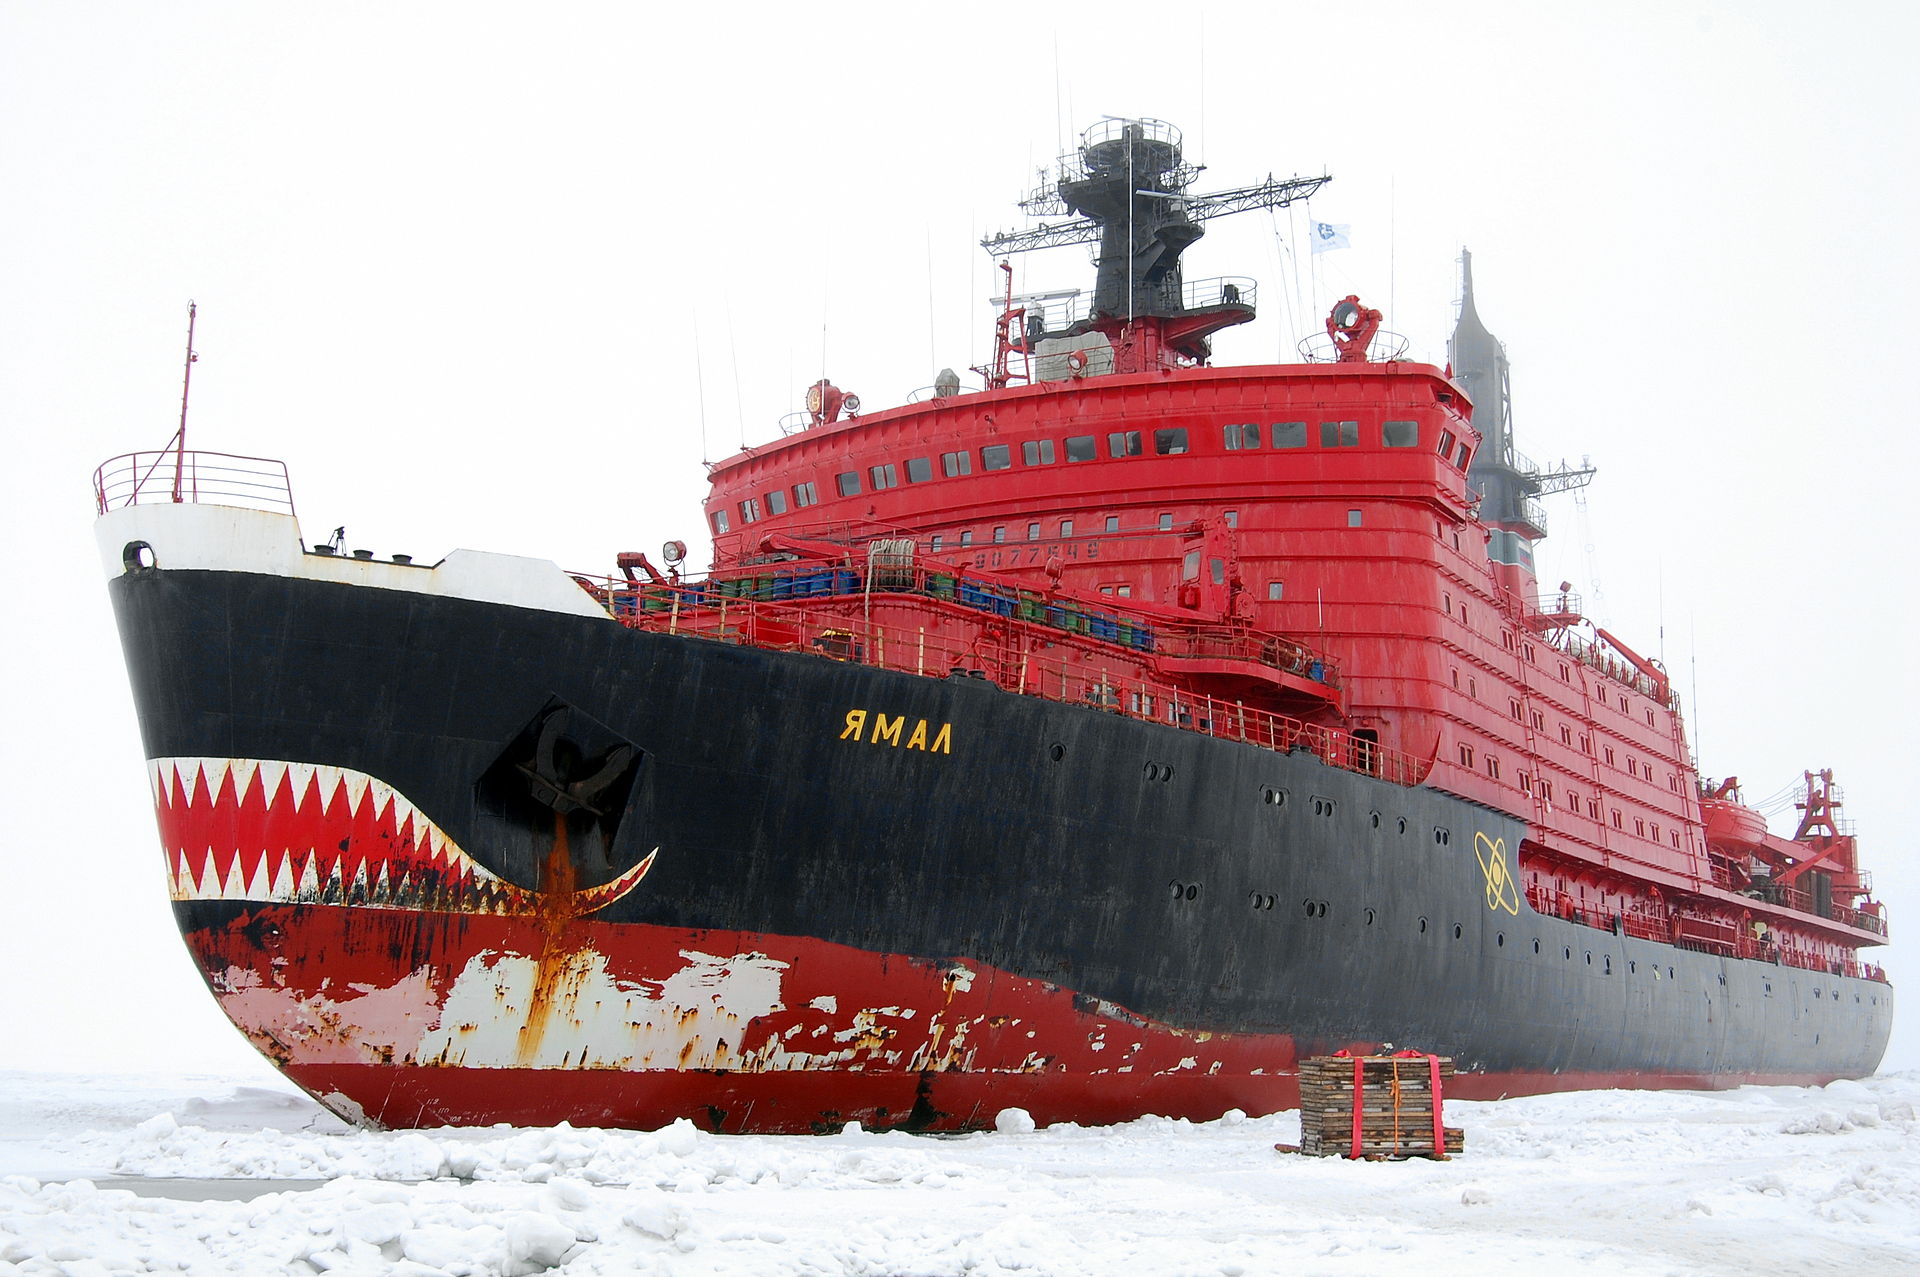 Icebreaker Yamal during removal of manned drifting station North Pole-36. August 2009. (Creative Commons photo by Pink floyd88)